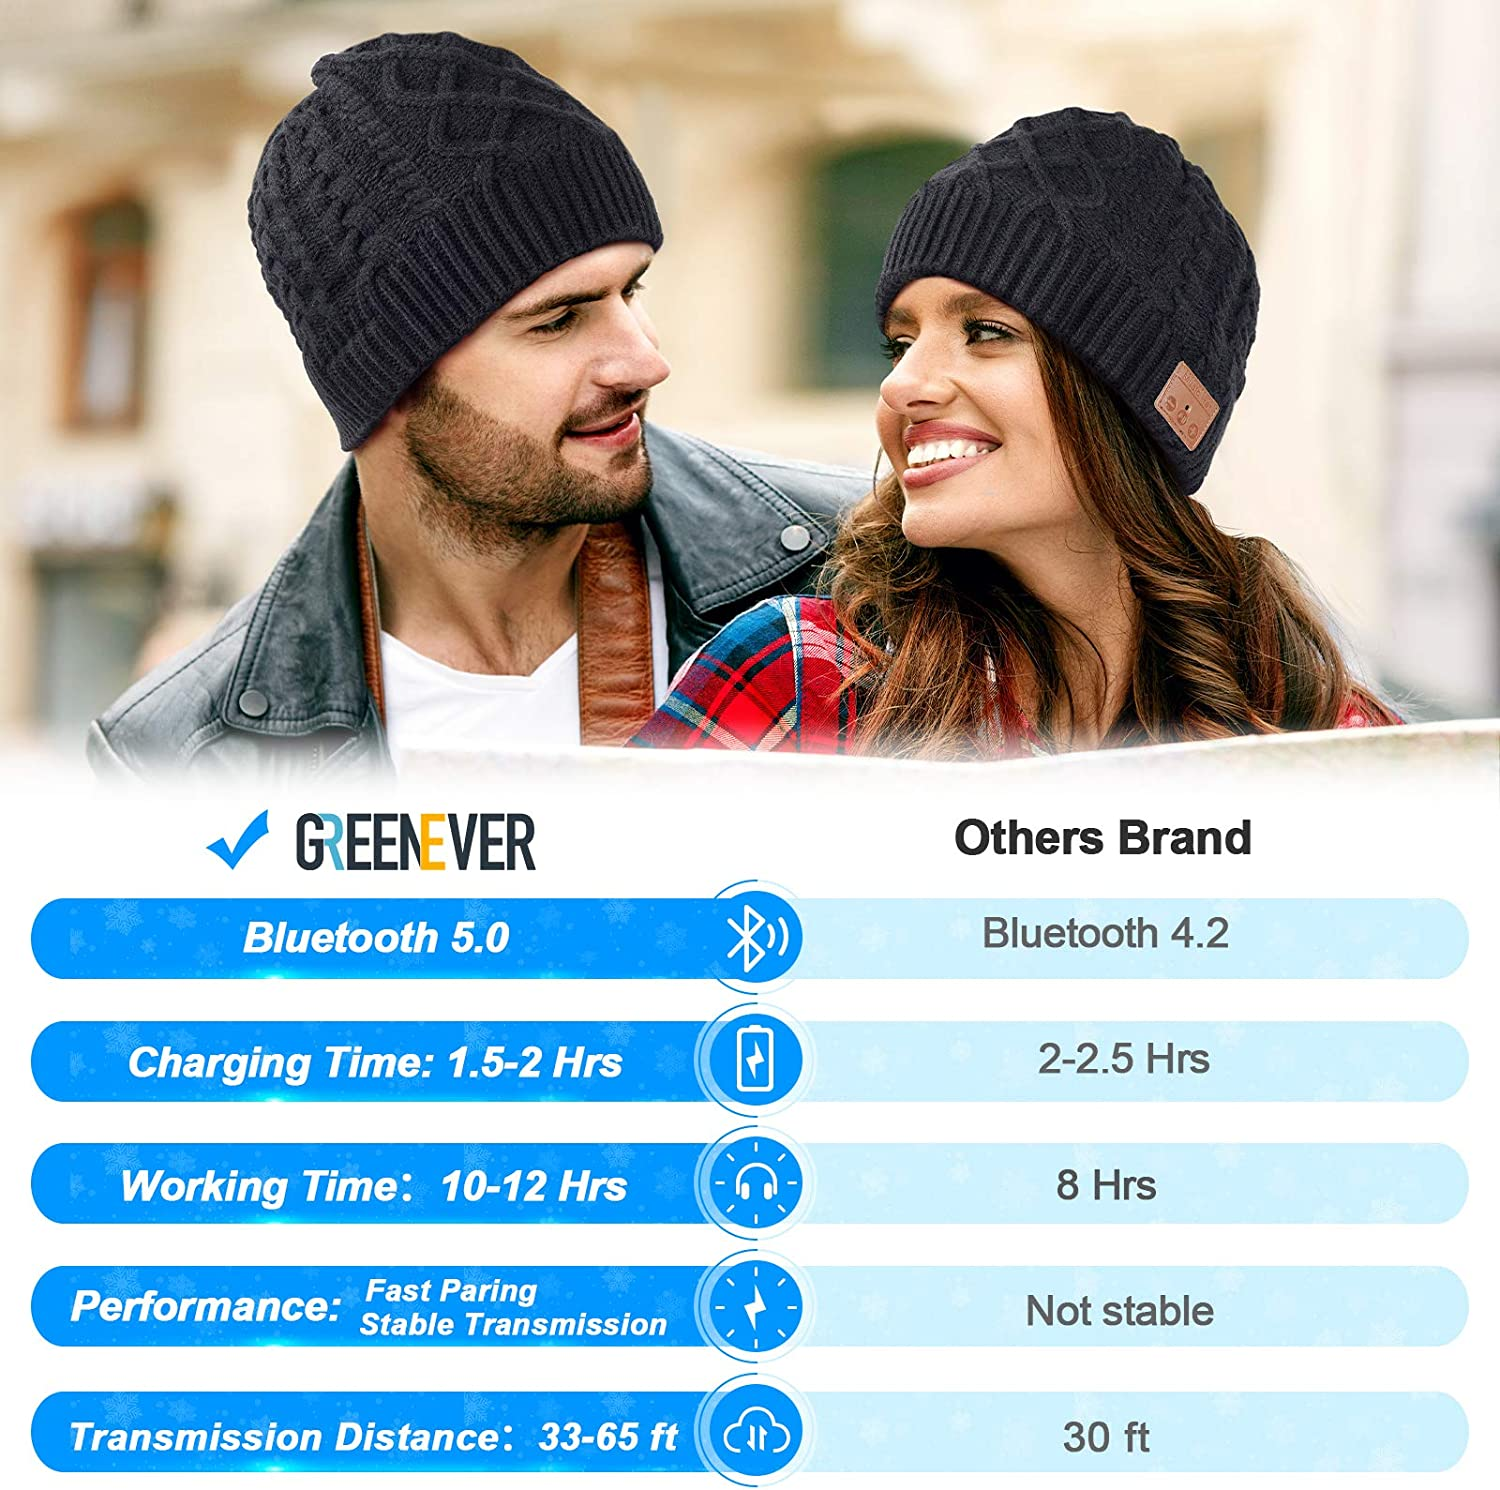 Stocking Stuffers for Men /& Women Knit Hat for Men Bluetooth Hat with Bluetooth 5.0 Music Beanie Friend Thanksgiving for Men Women Teens 2020 Gifts for Men /& Women Bluetooth Beanie